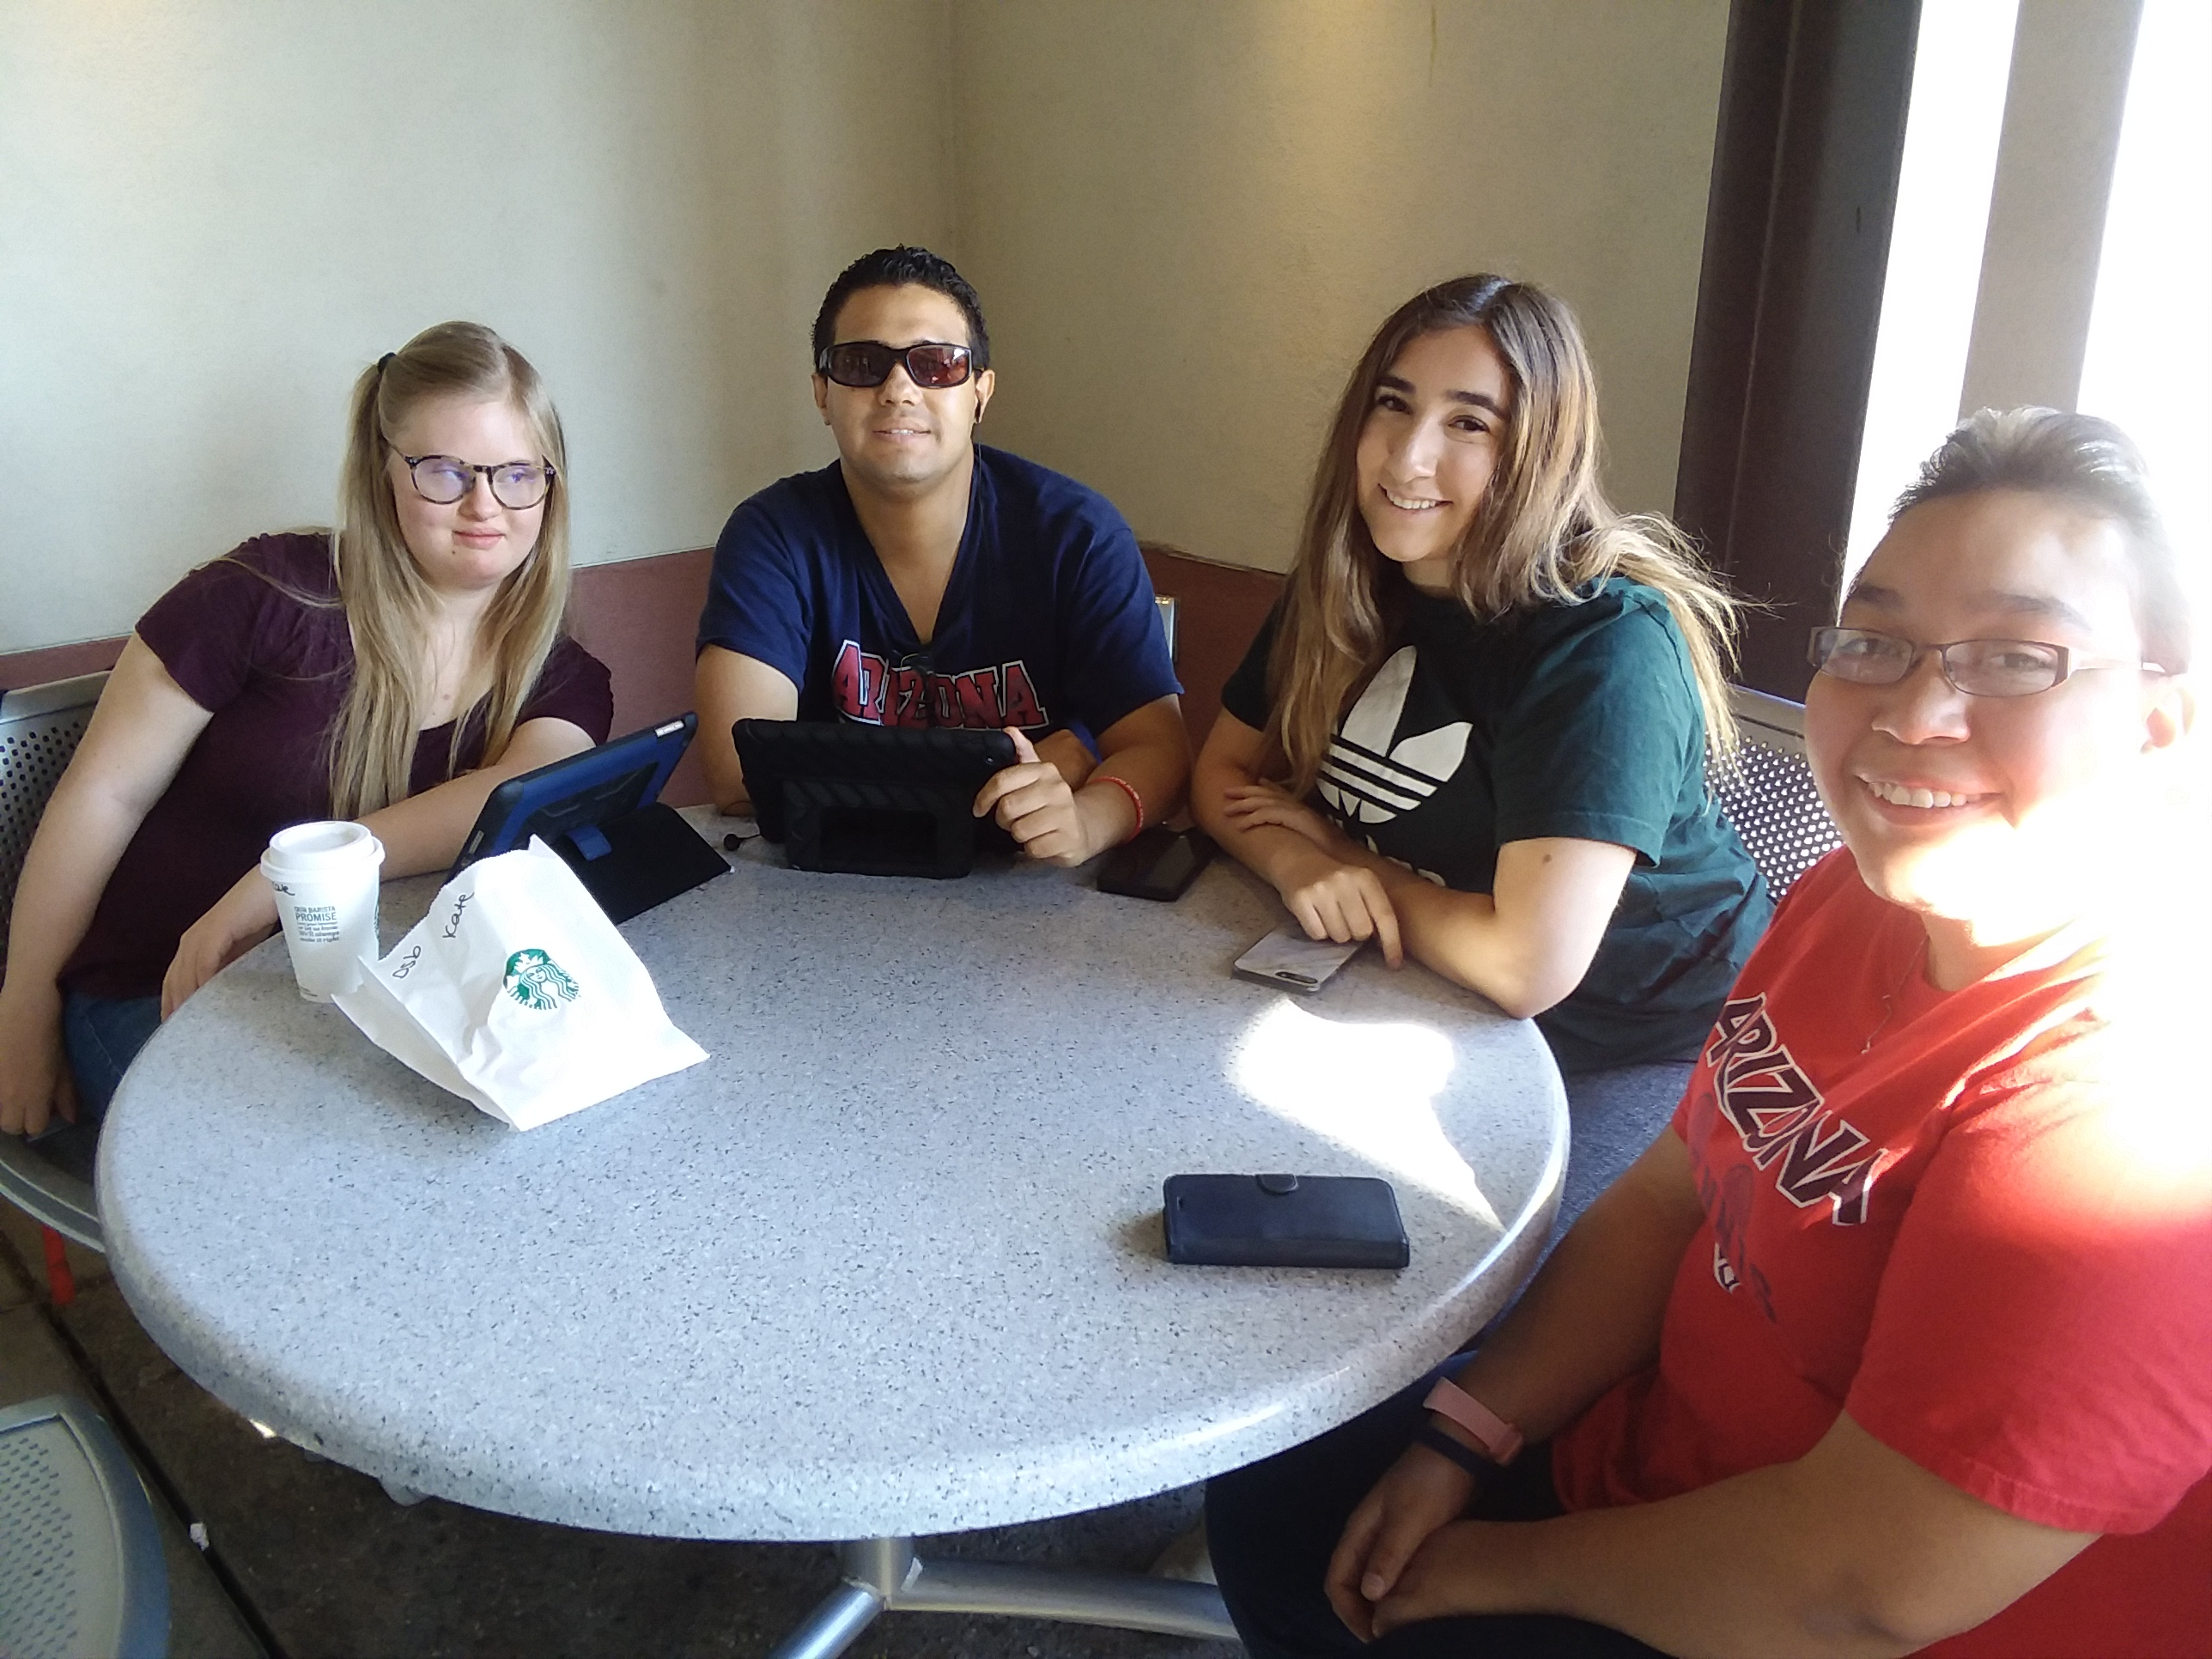 group of four students sitting at table